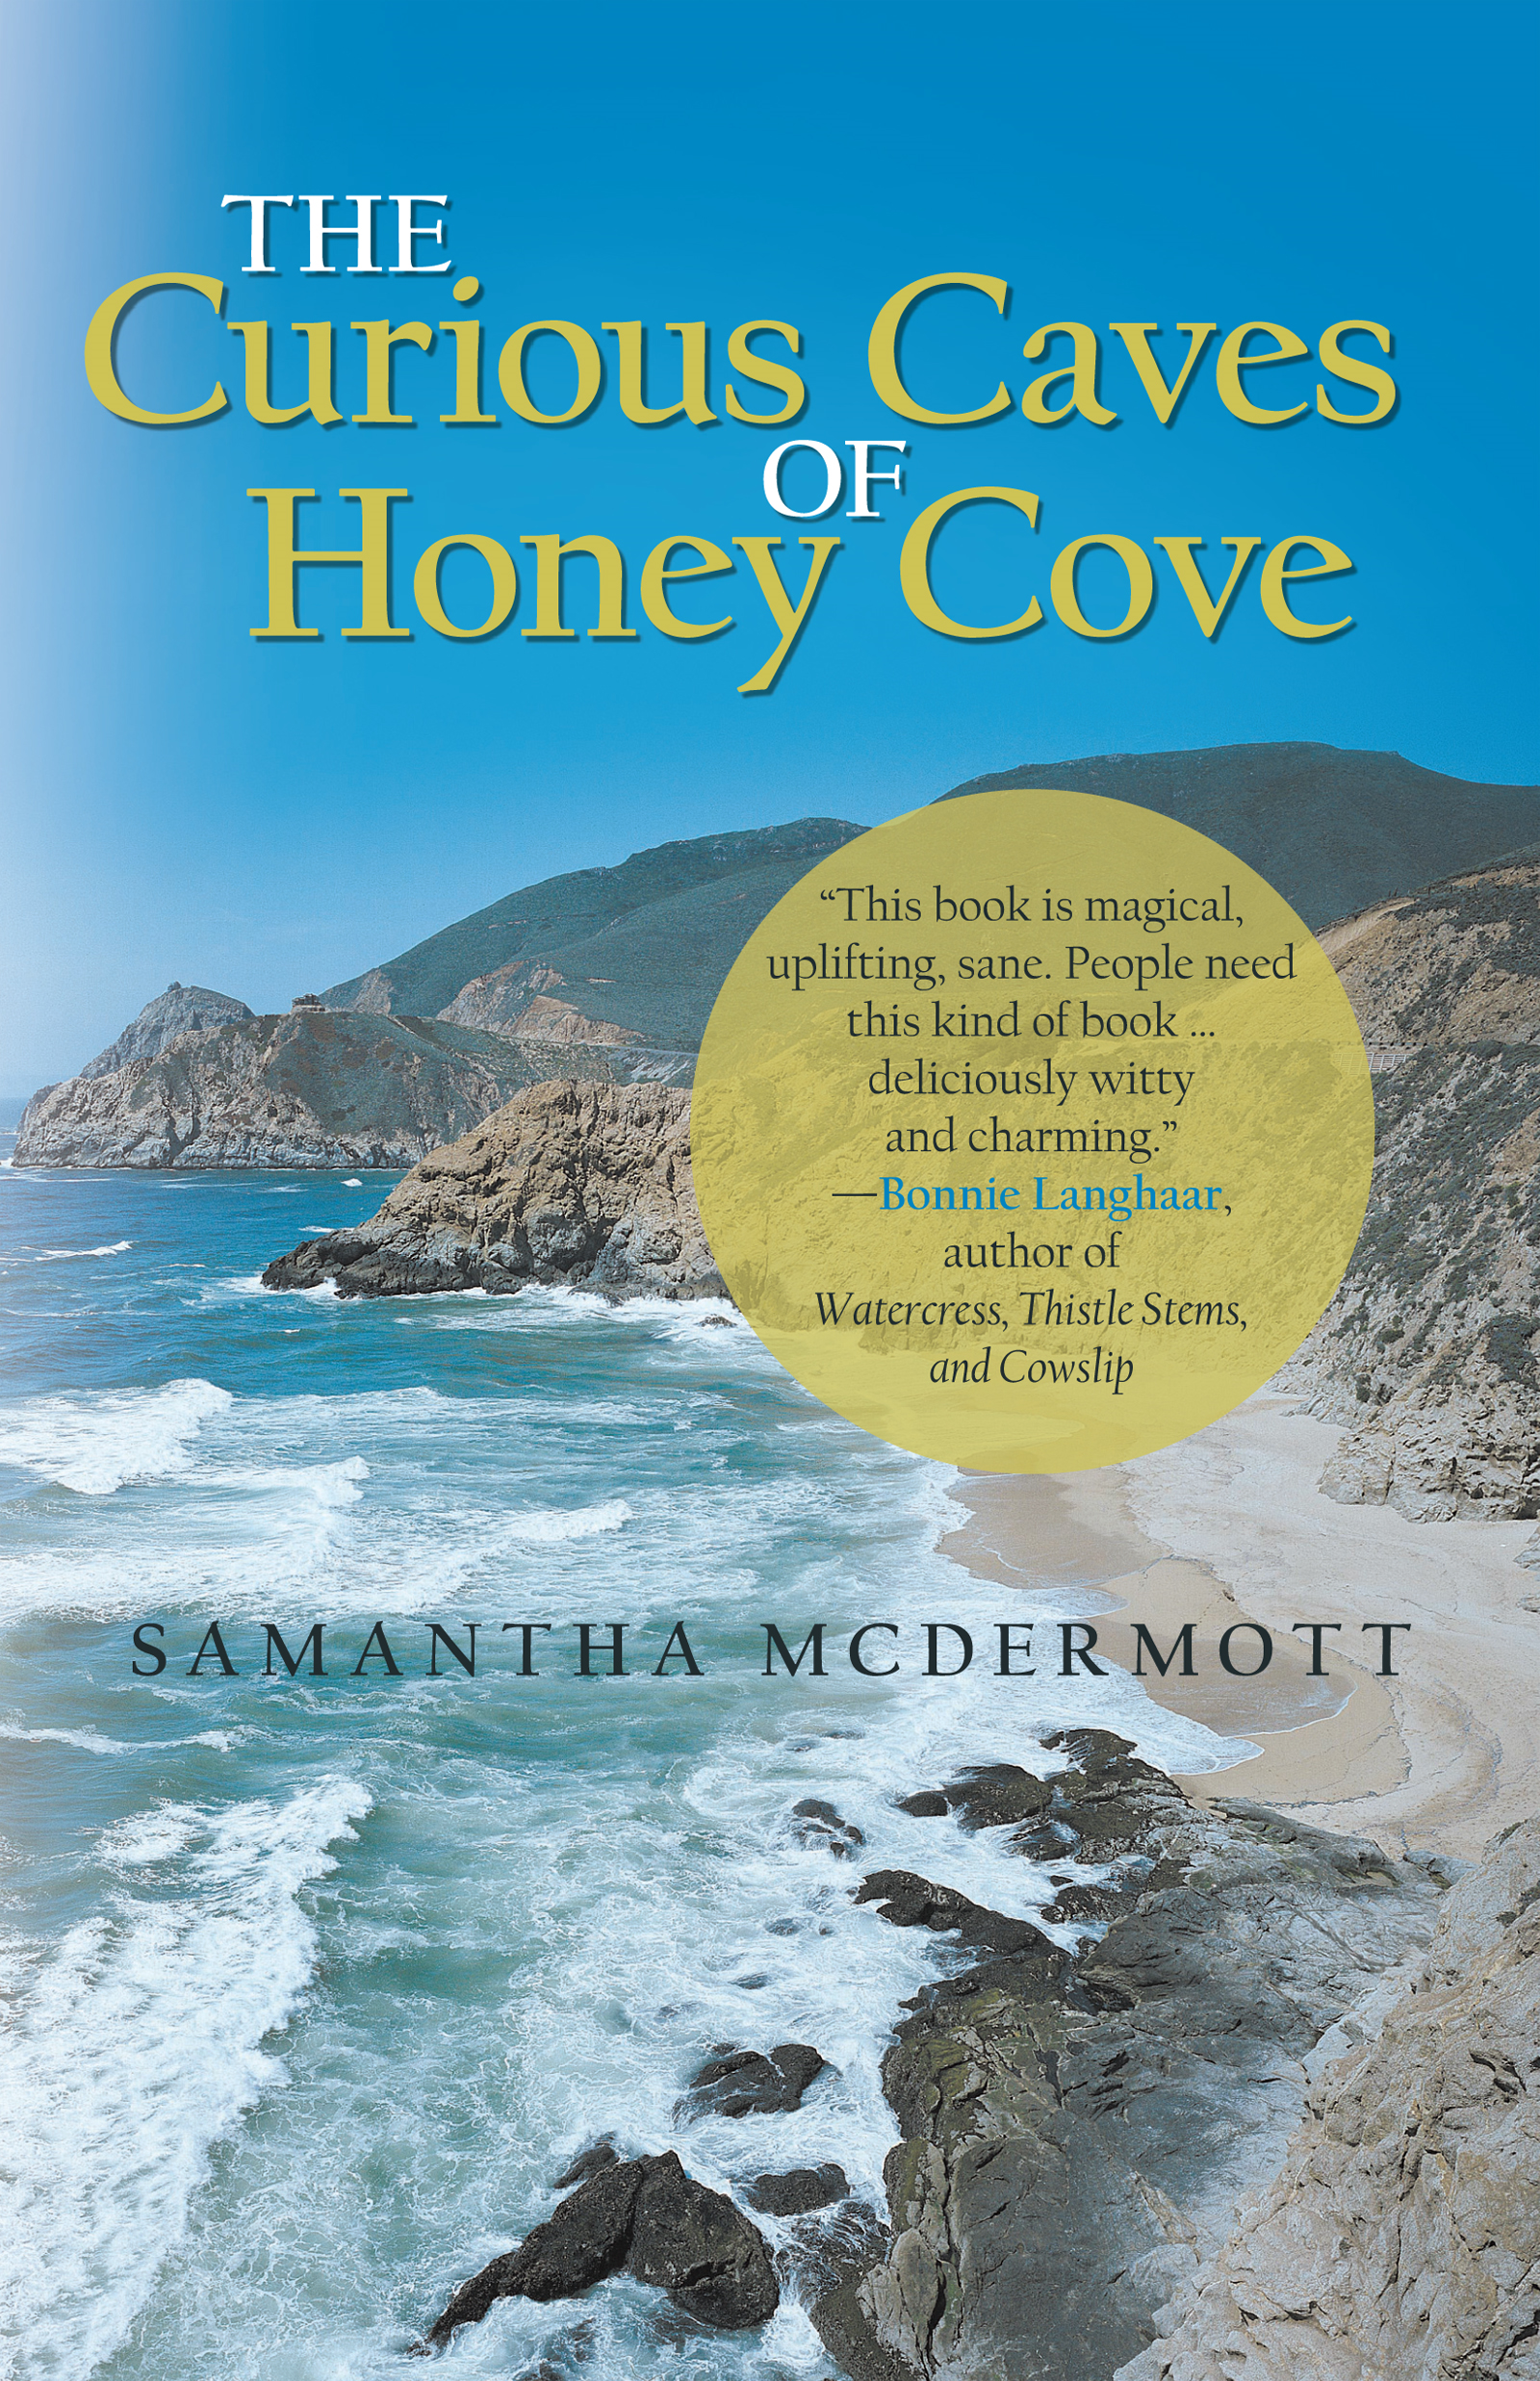 The Curious Caves of Honey Cove By: Samantha McDermott